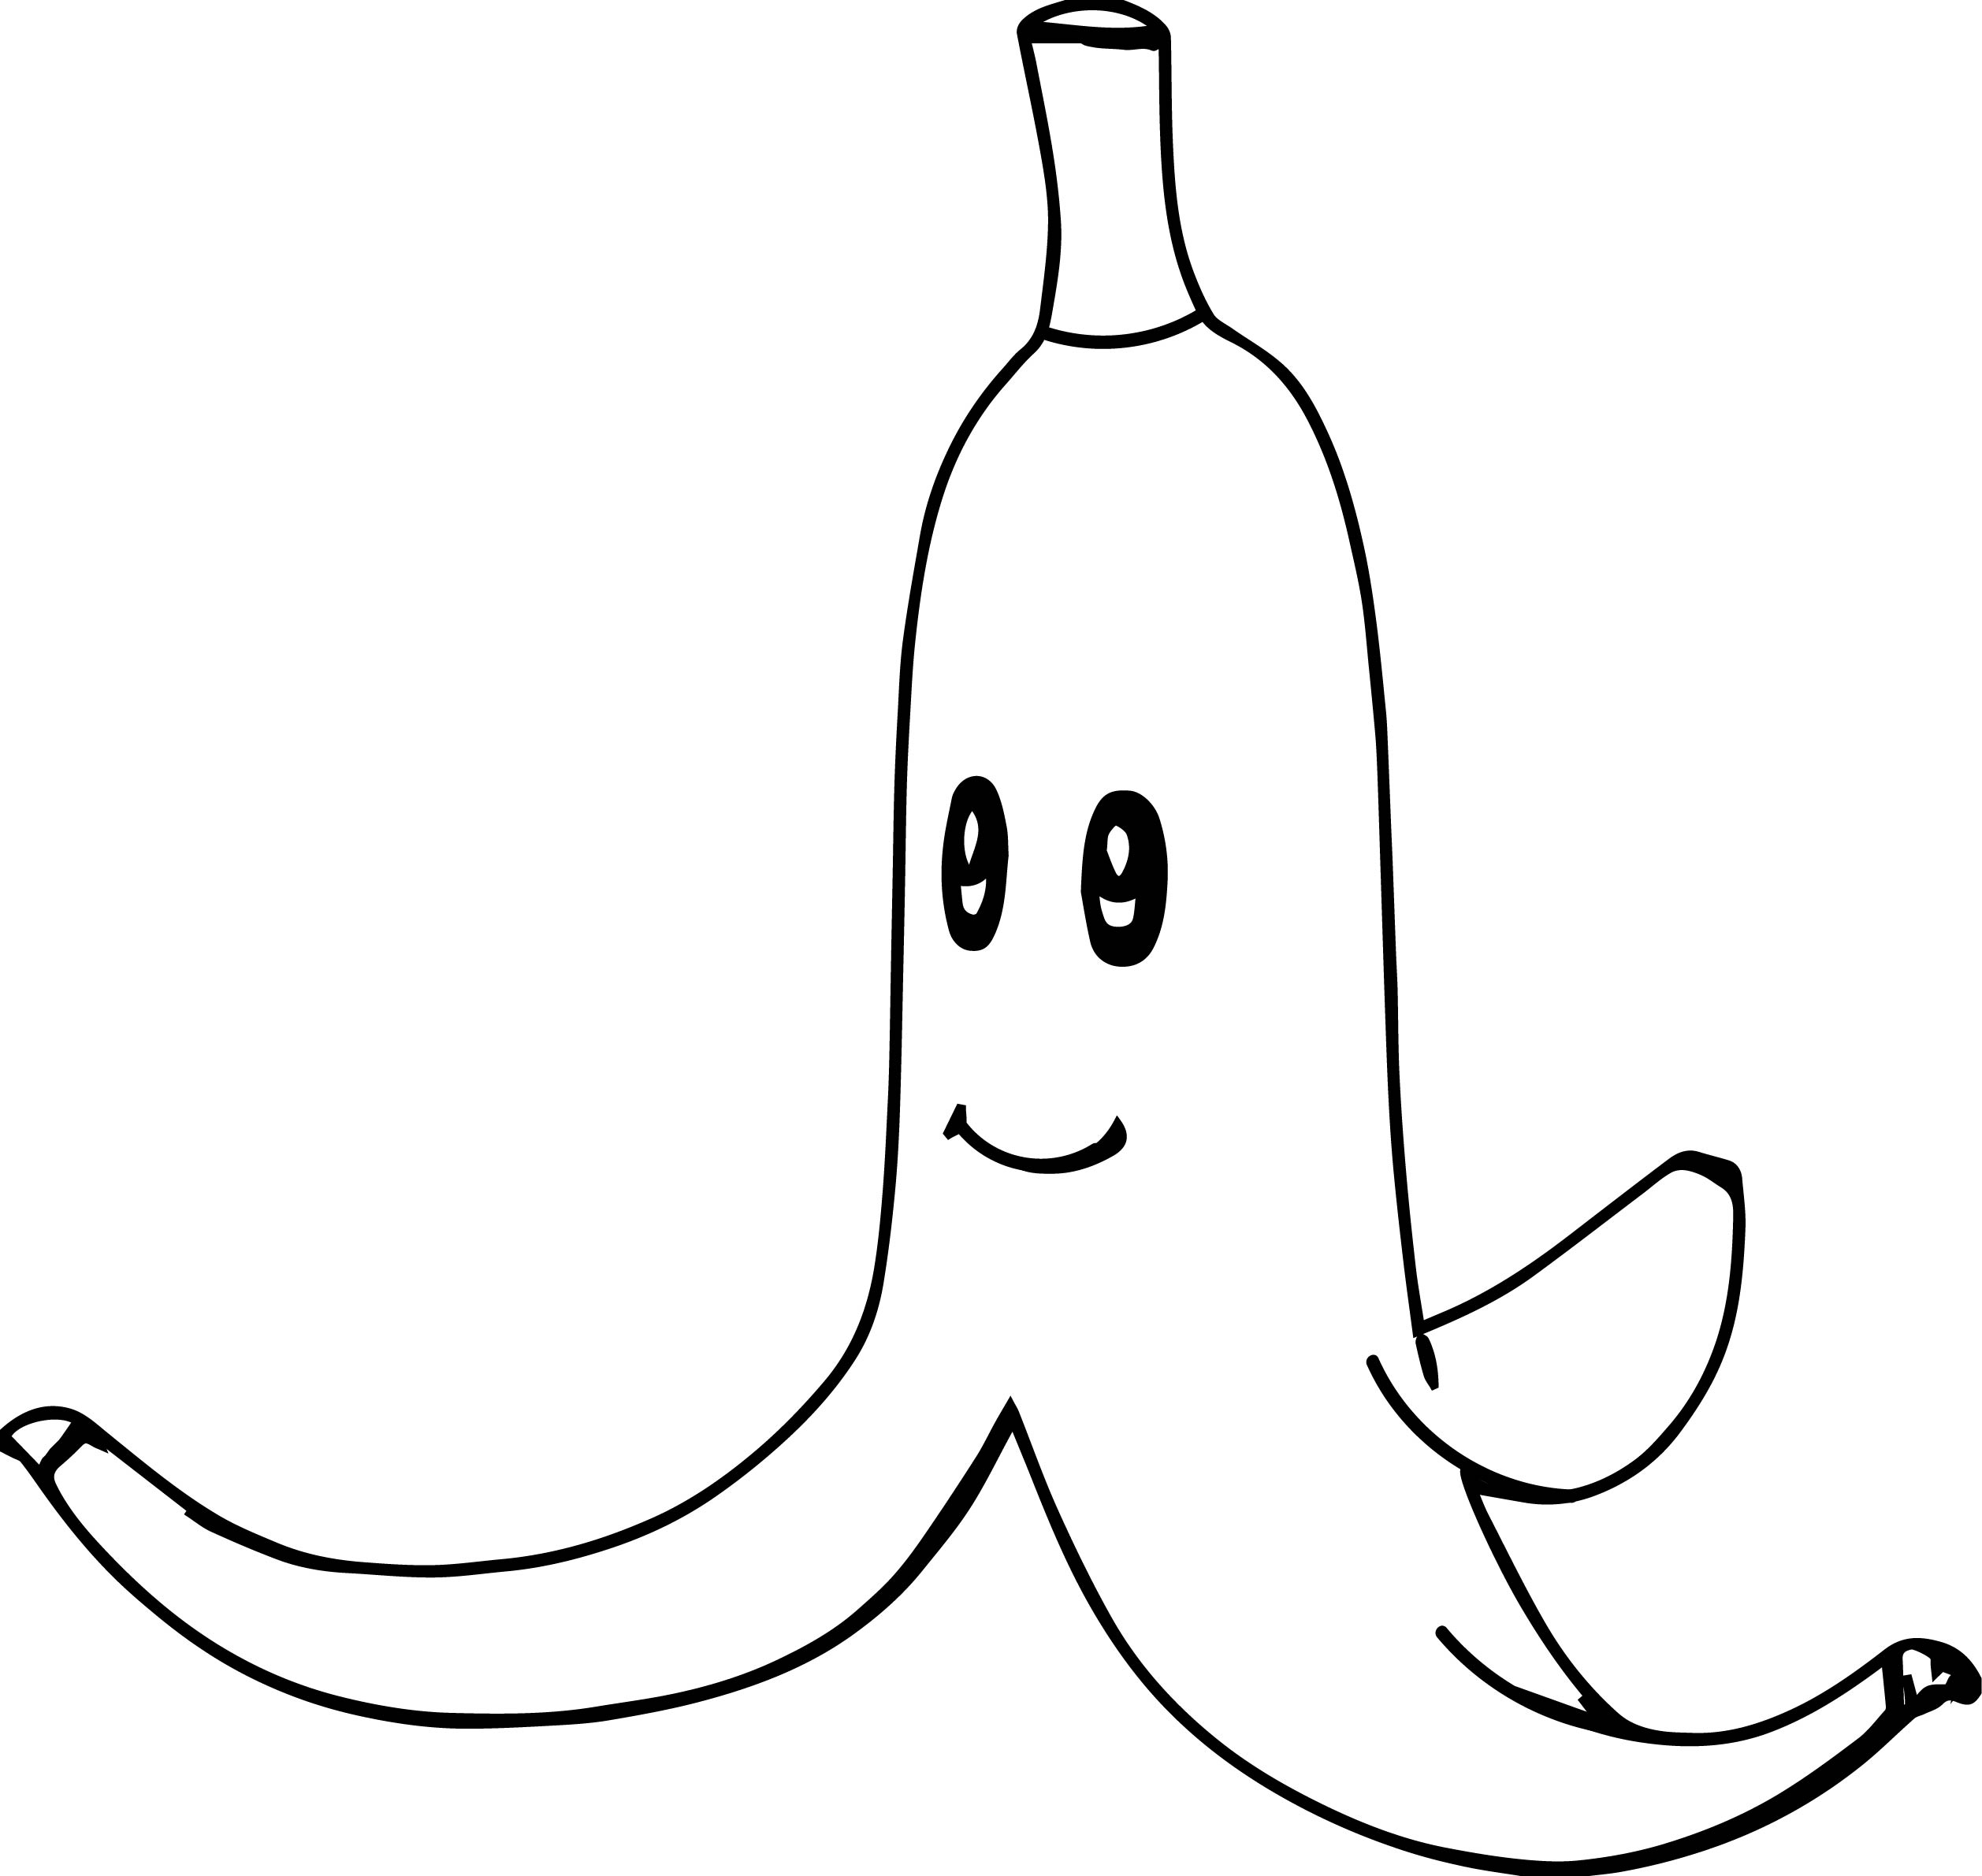 blue coloring pages - super mario bros banana coloring page